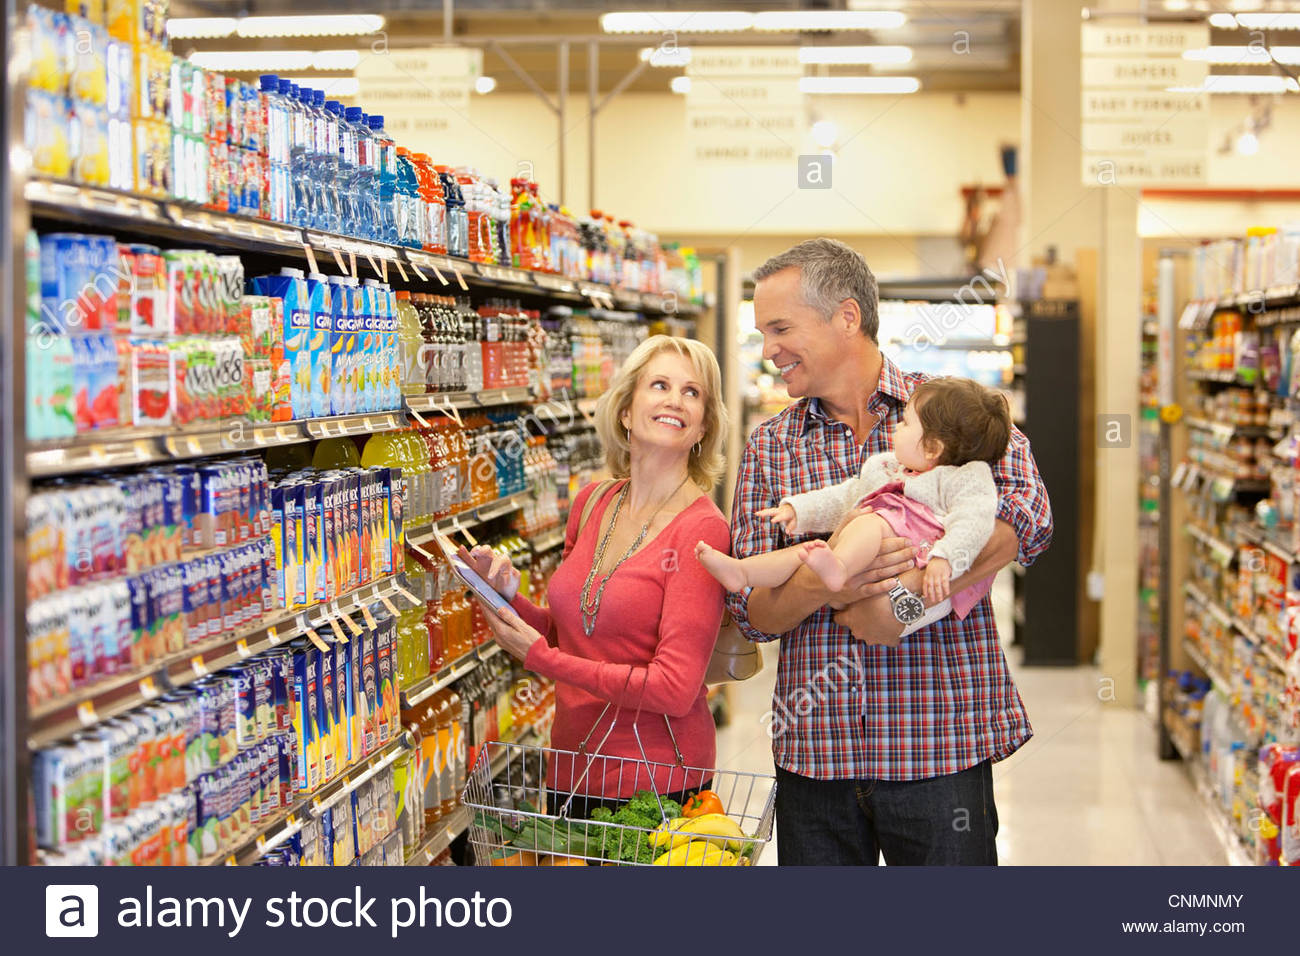 Family shopping for groceries in supermarket - Stock Image